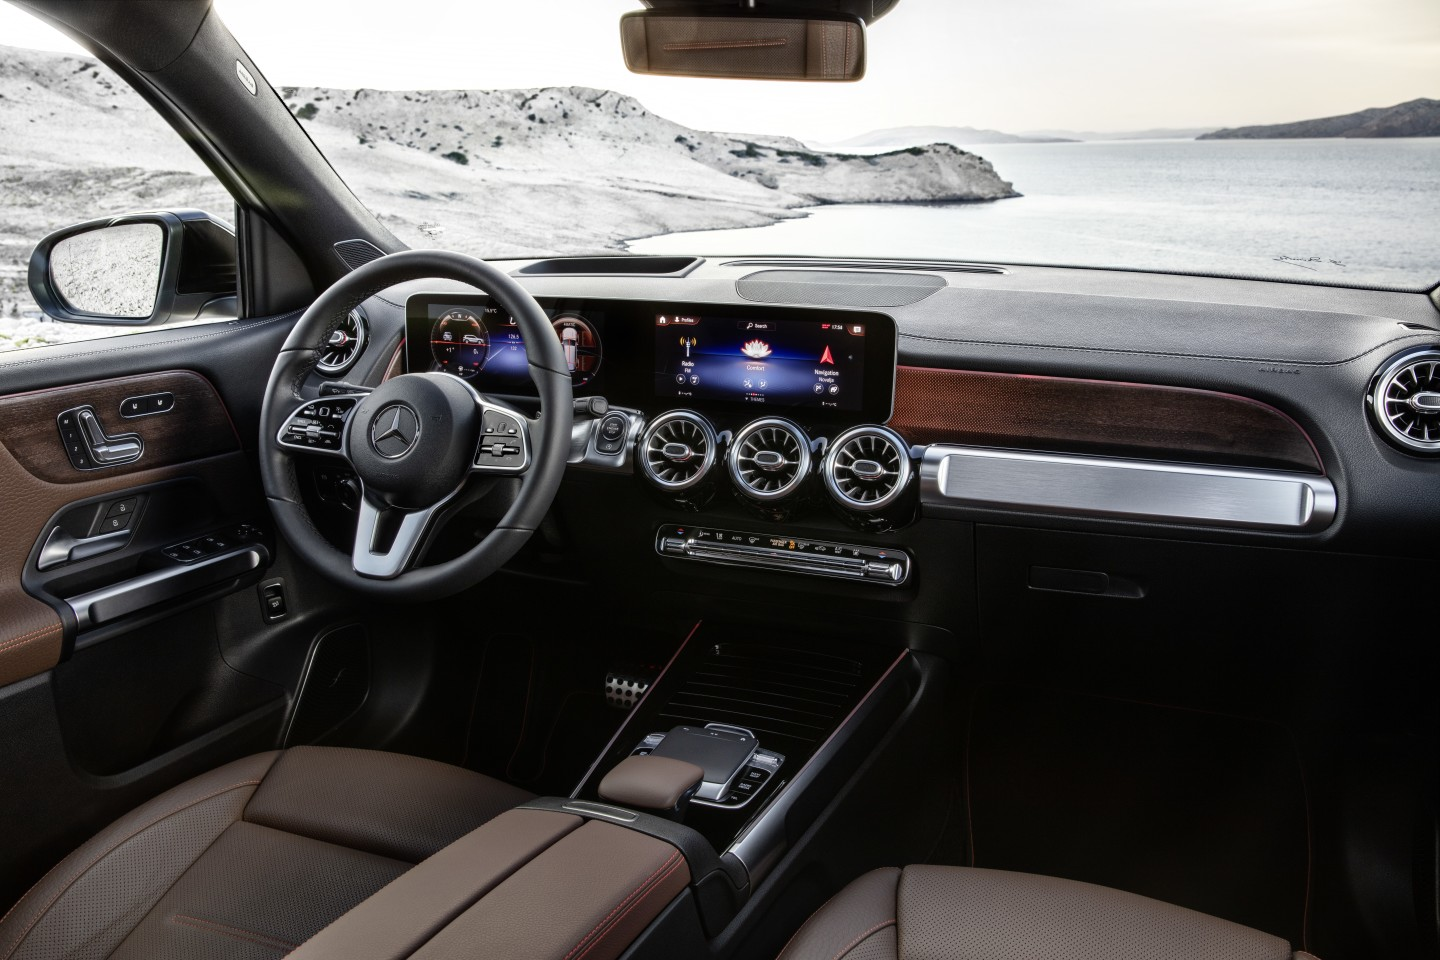 The GLB's interior design is geared towards both usability and top shelf luxury from a production model